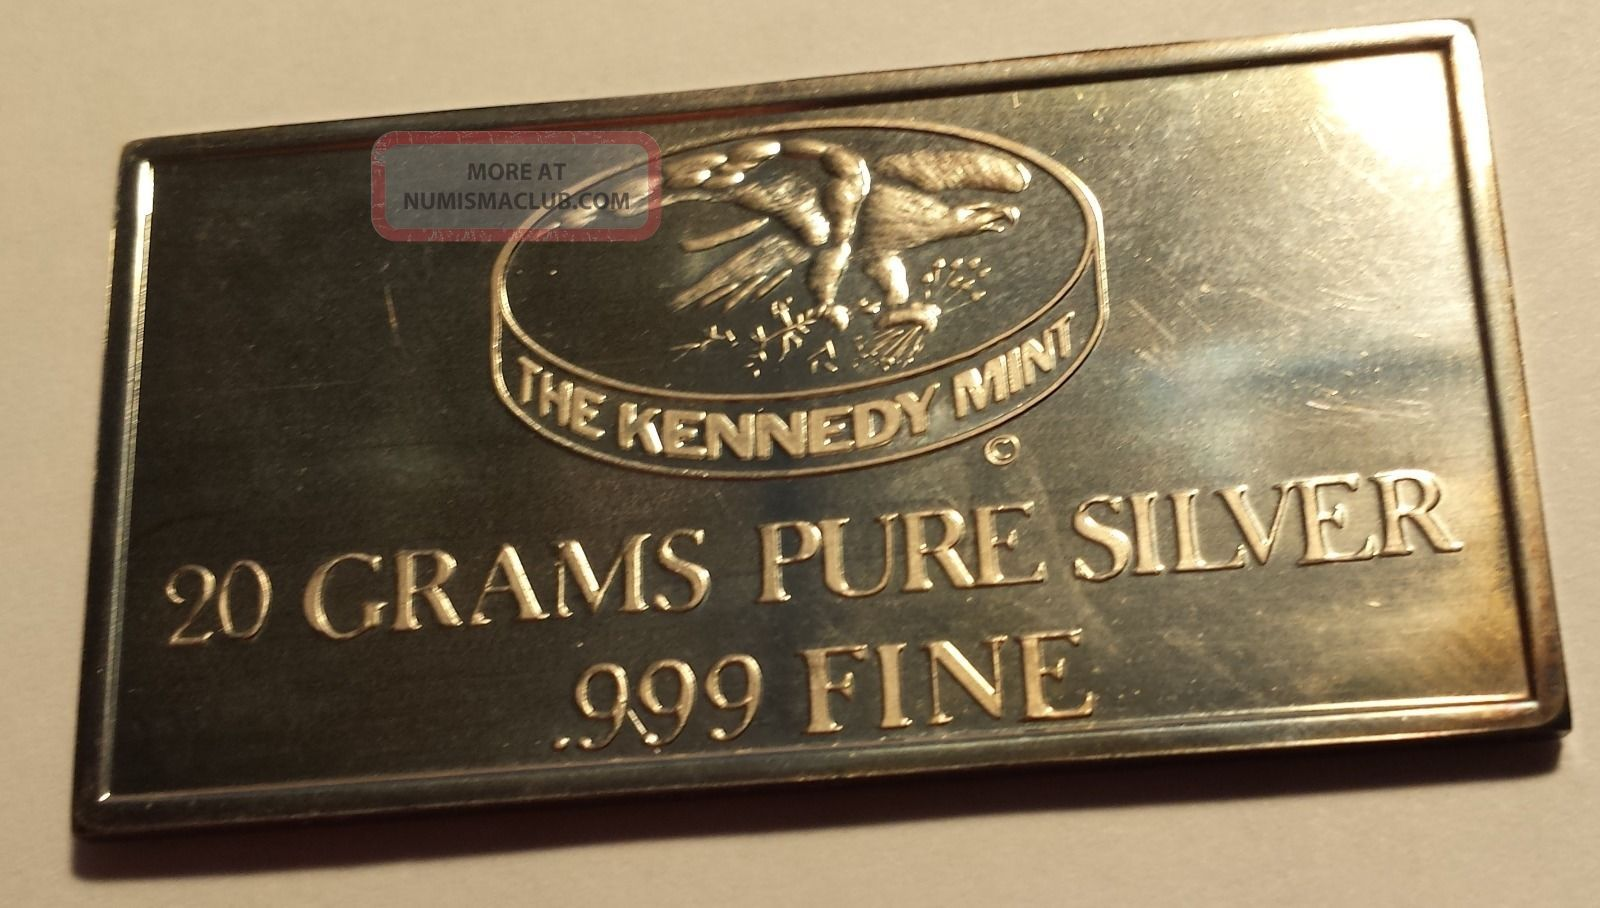 Kennedy 20 Grams Pure Silver 999 Fine 4 Flags Silver Bar 20g